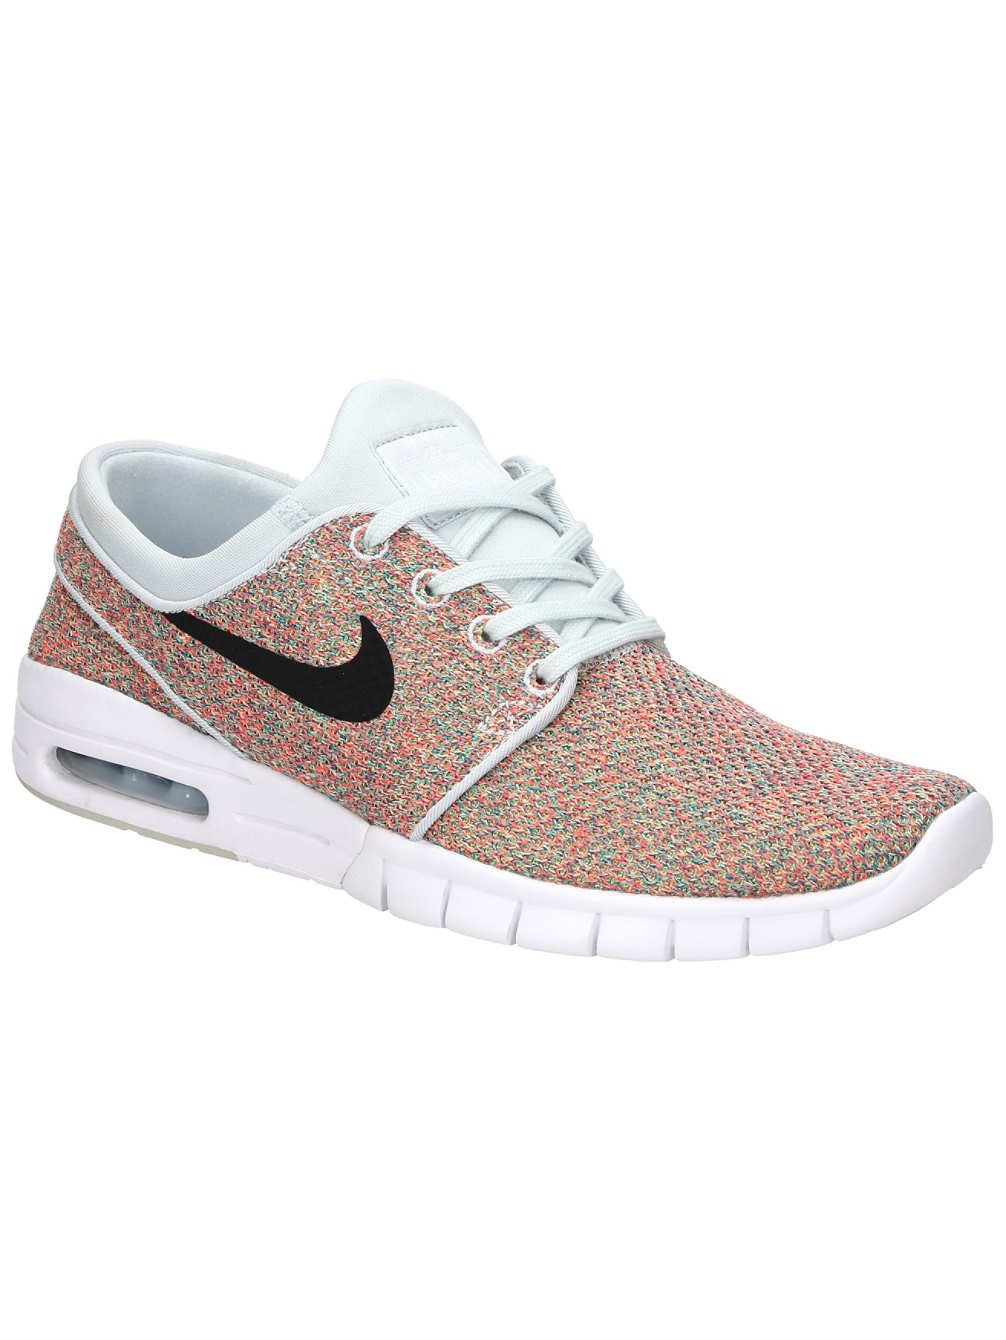 8cd4f7e7571 Galleon - Men s Nike SB Stefan Janoski Max Skateboarding Shoe